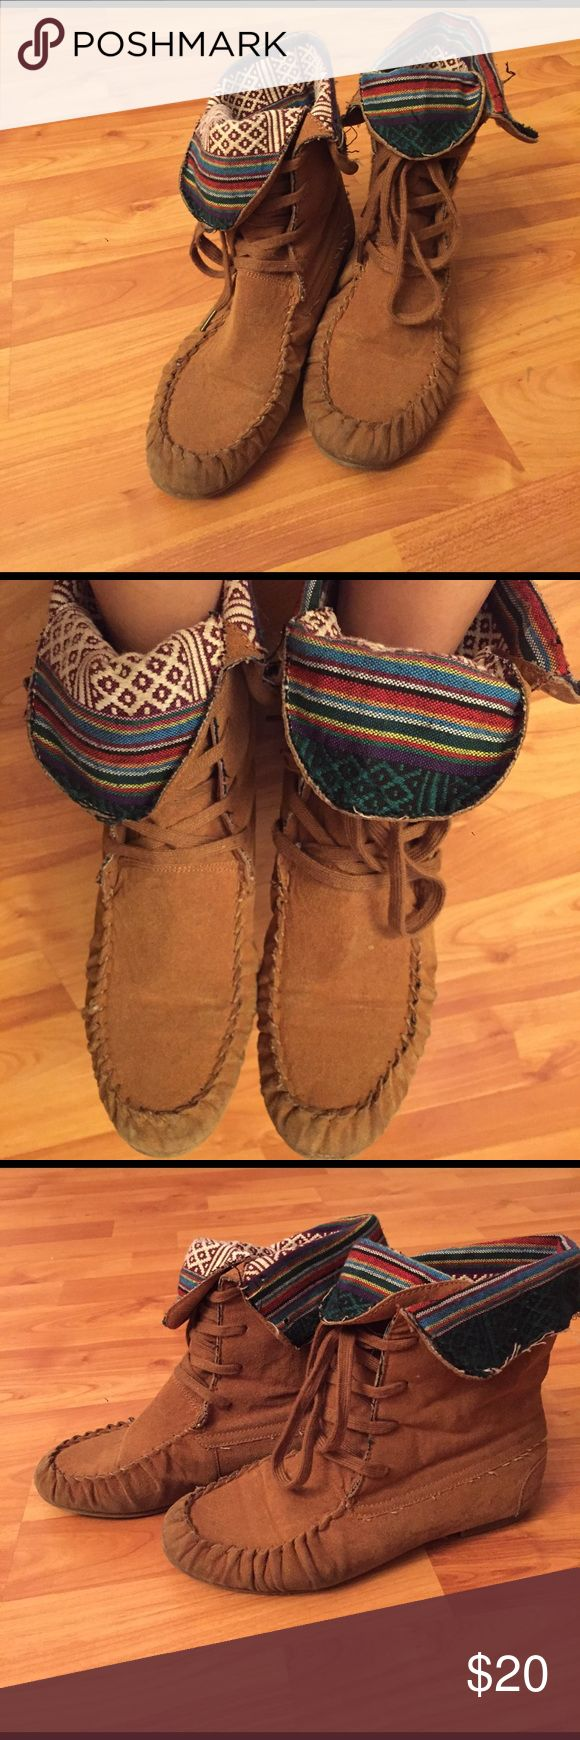 Charlotte Russe moccasin boots Hipster moccasin boots. Extremely comfortable and match every color! Some signs of wear shown in the pictures, but still in great condition. Charlotte Russe Shoes Ankle Boots & Booties